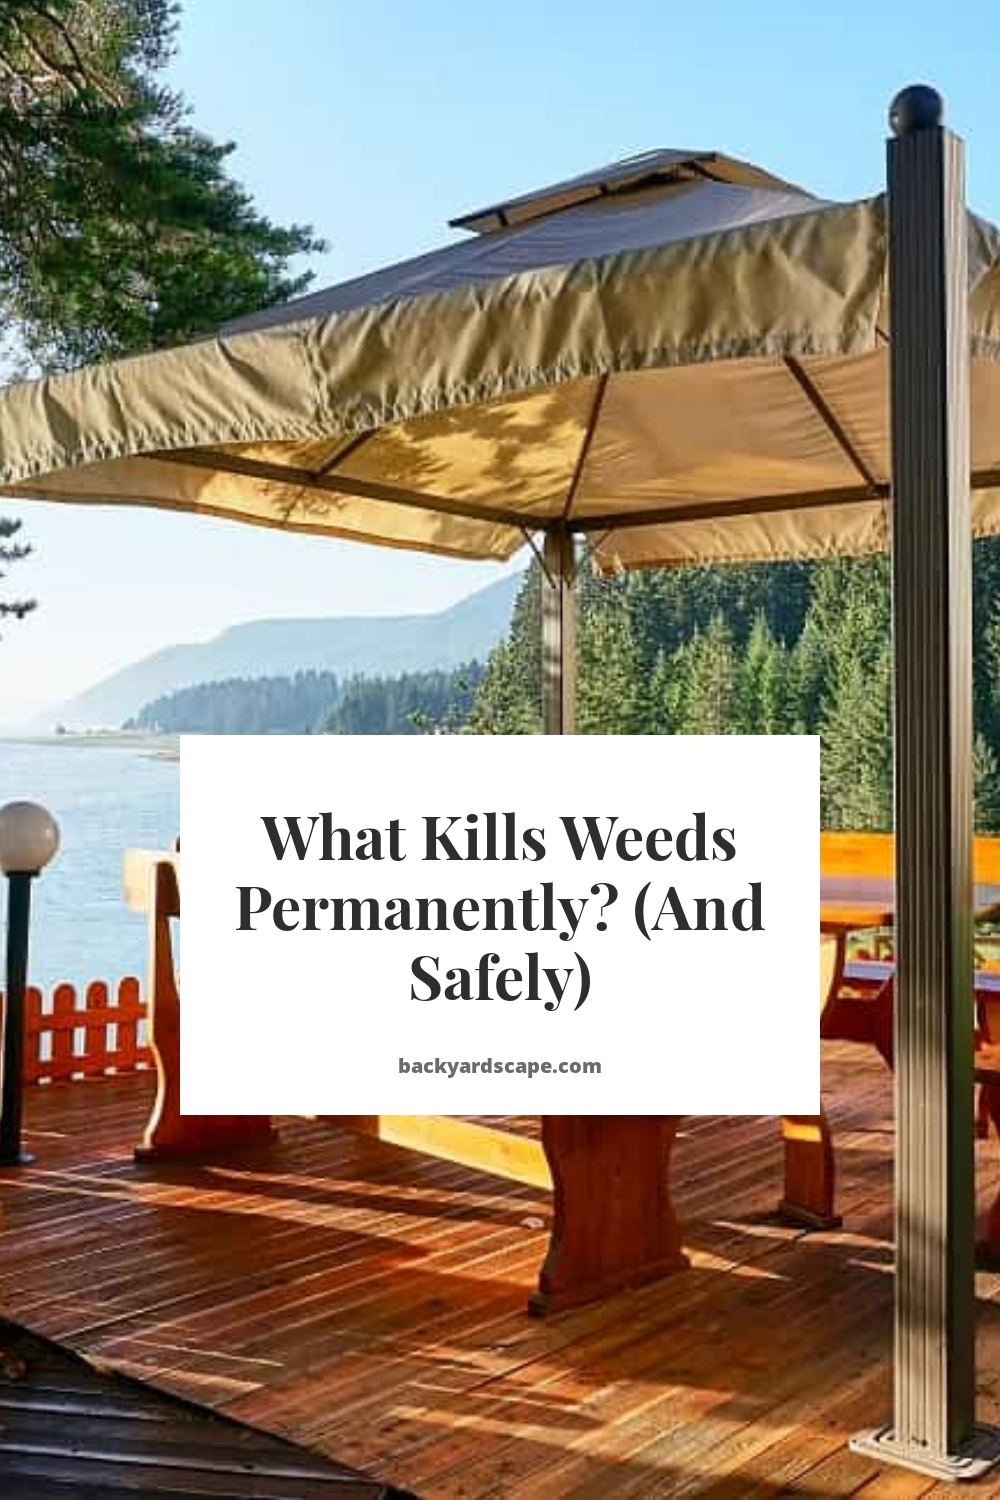 What Kills Weeds Permanently? (And Safely)